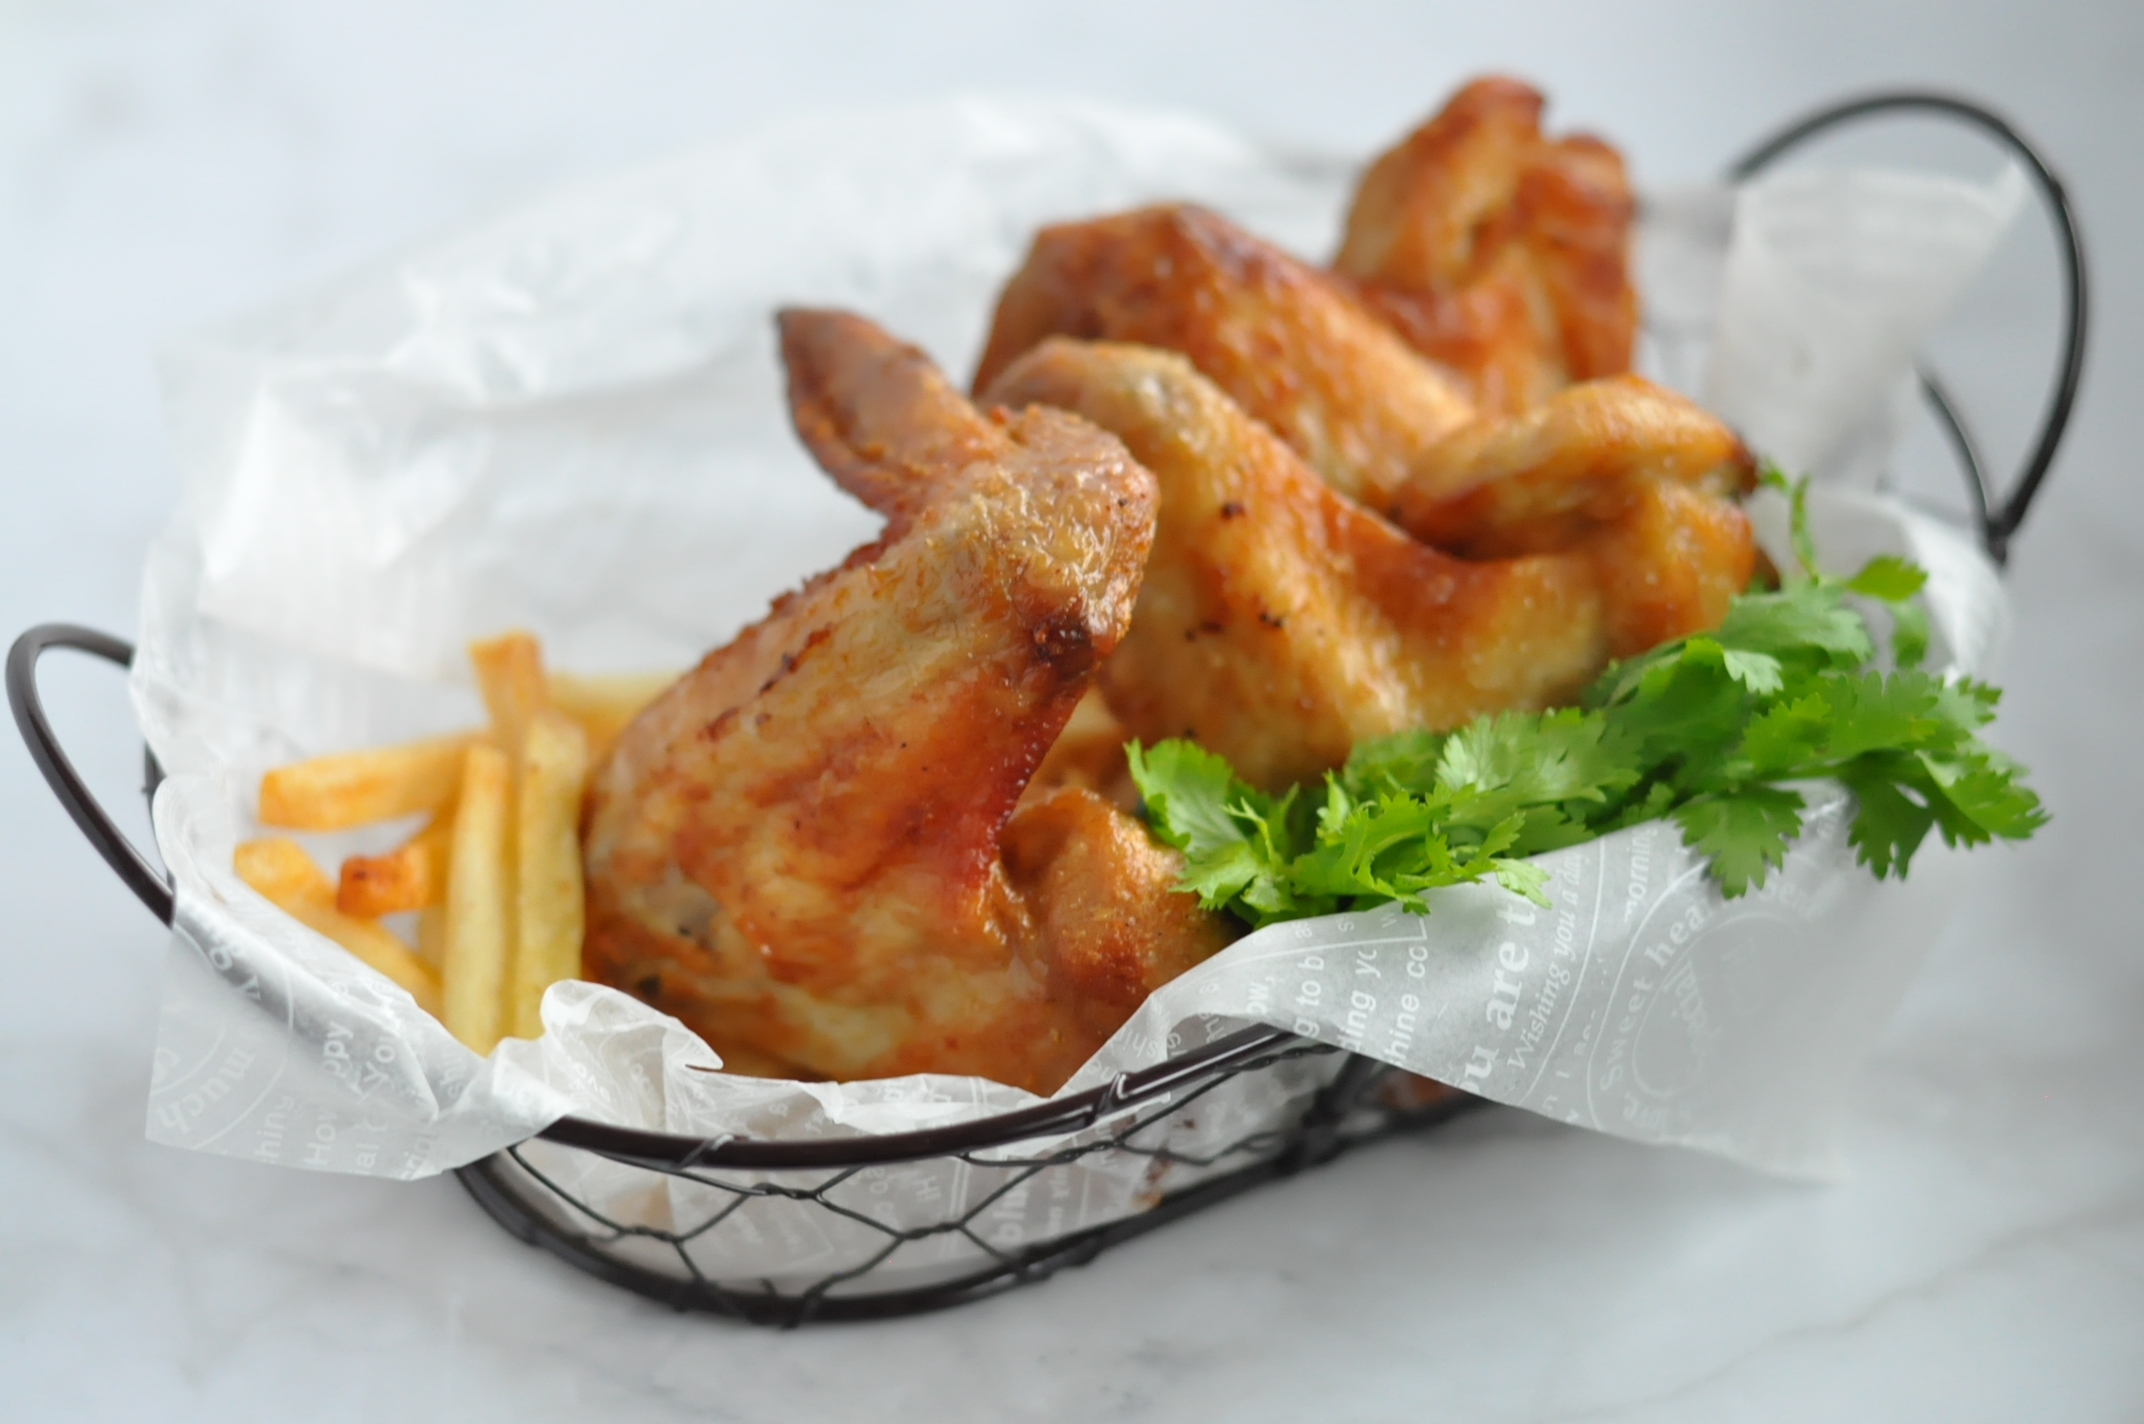 The Ultimate Chicken Wings Air Fried 香炸鸡翅 无油炸法 Eat